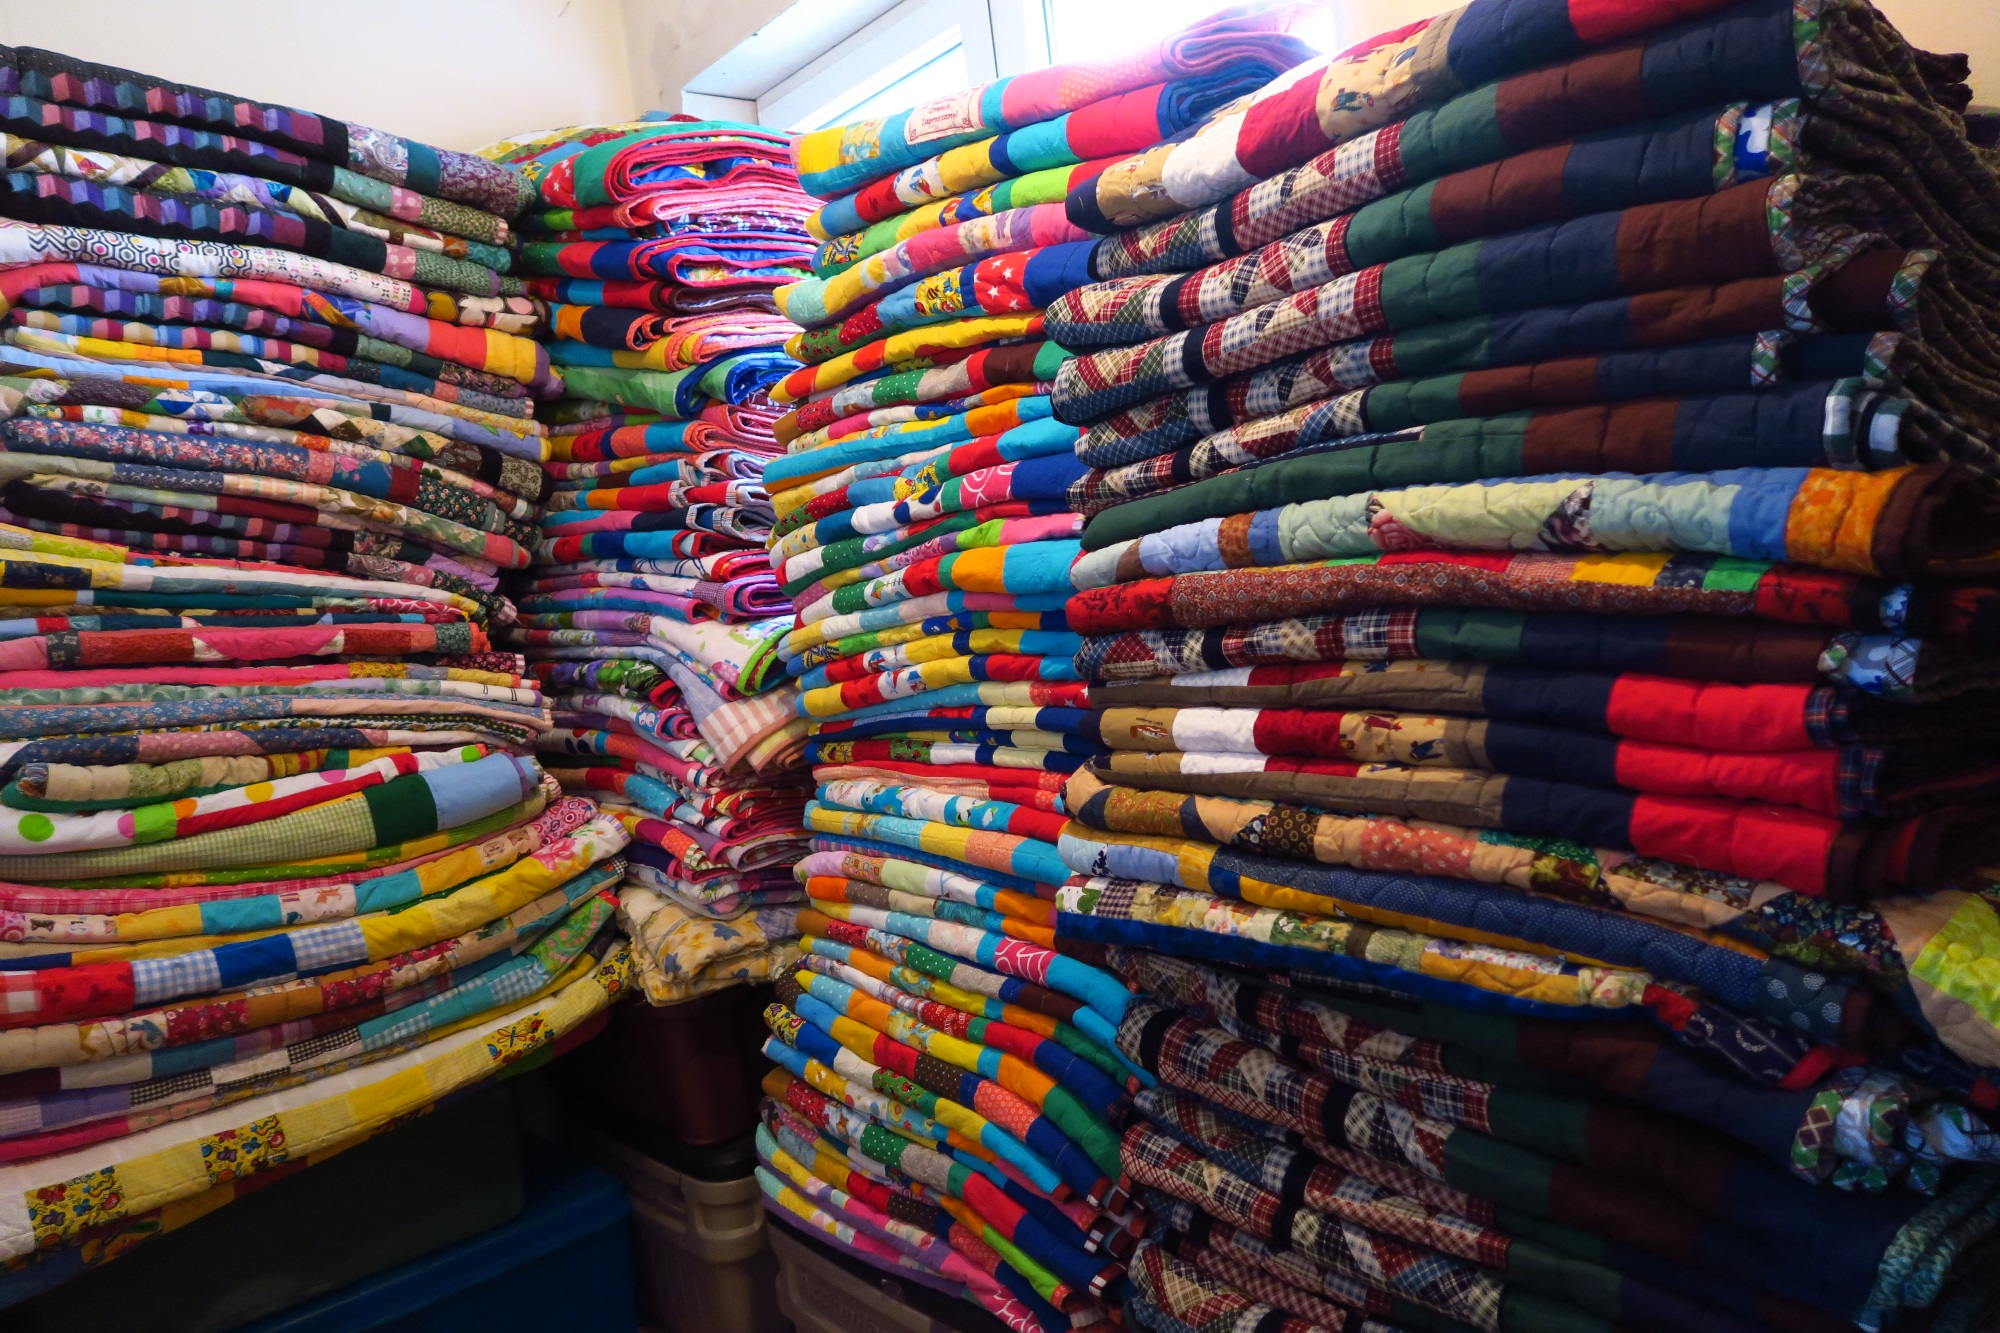 160 charity quilts sm.jpg